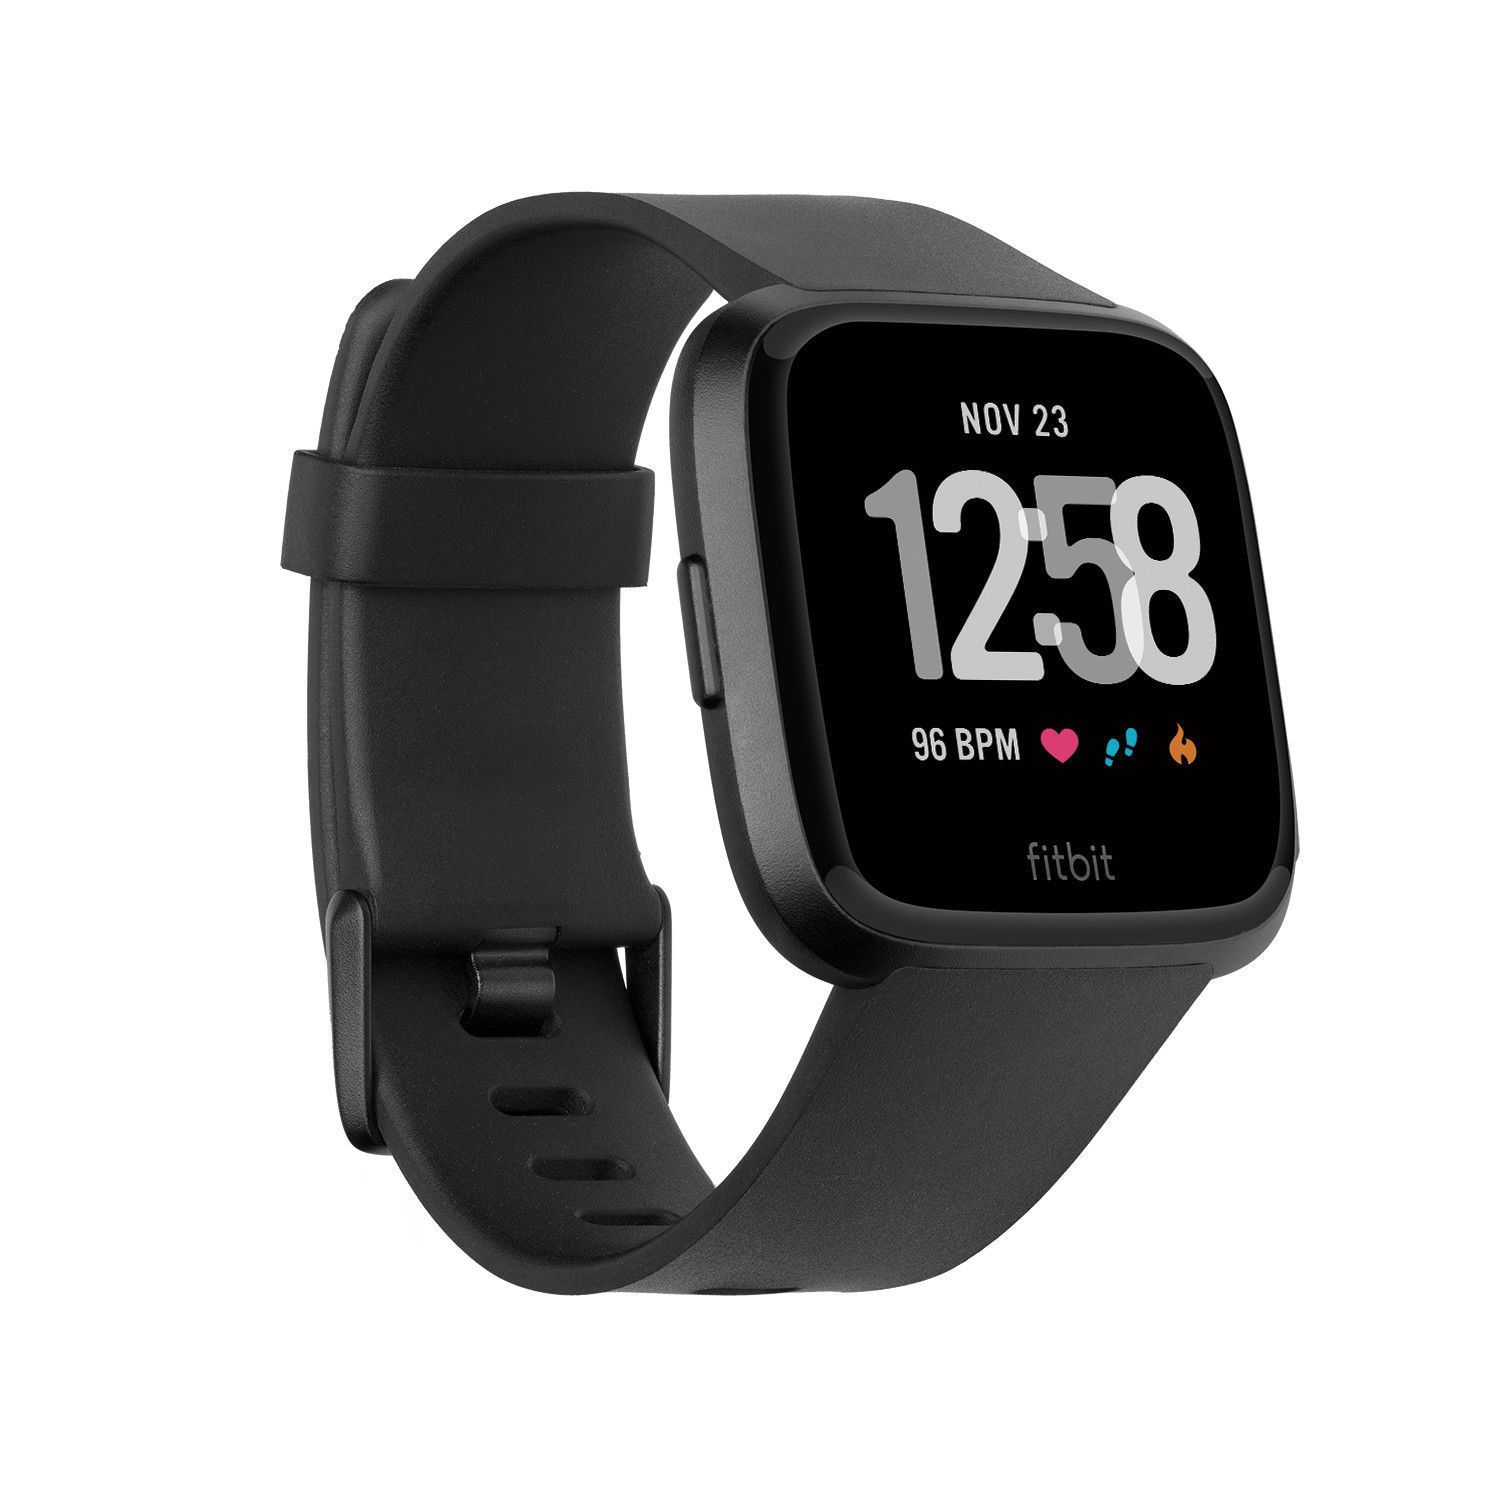 New Fitbit Versa Smartwatch Black Pebble Only Activity Trackers Fitbit Smartwatch Fitness Uhr